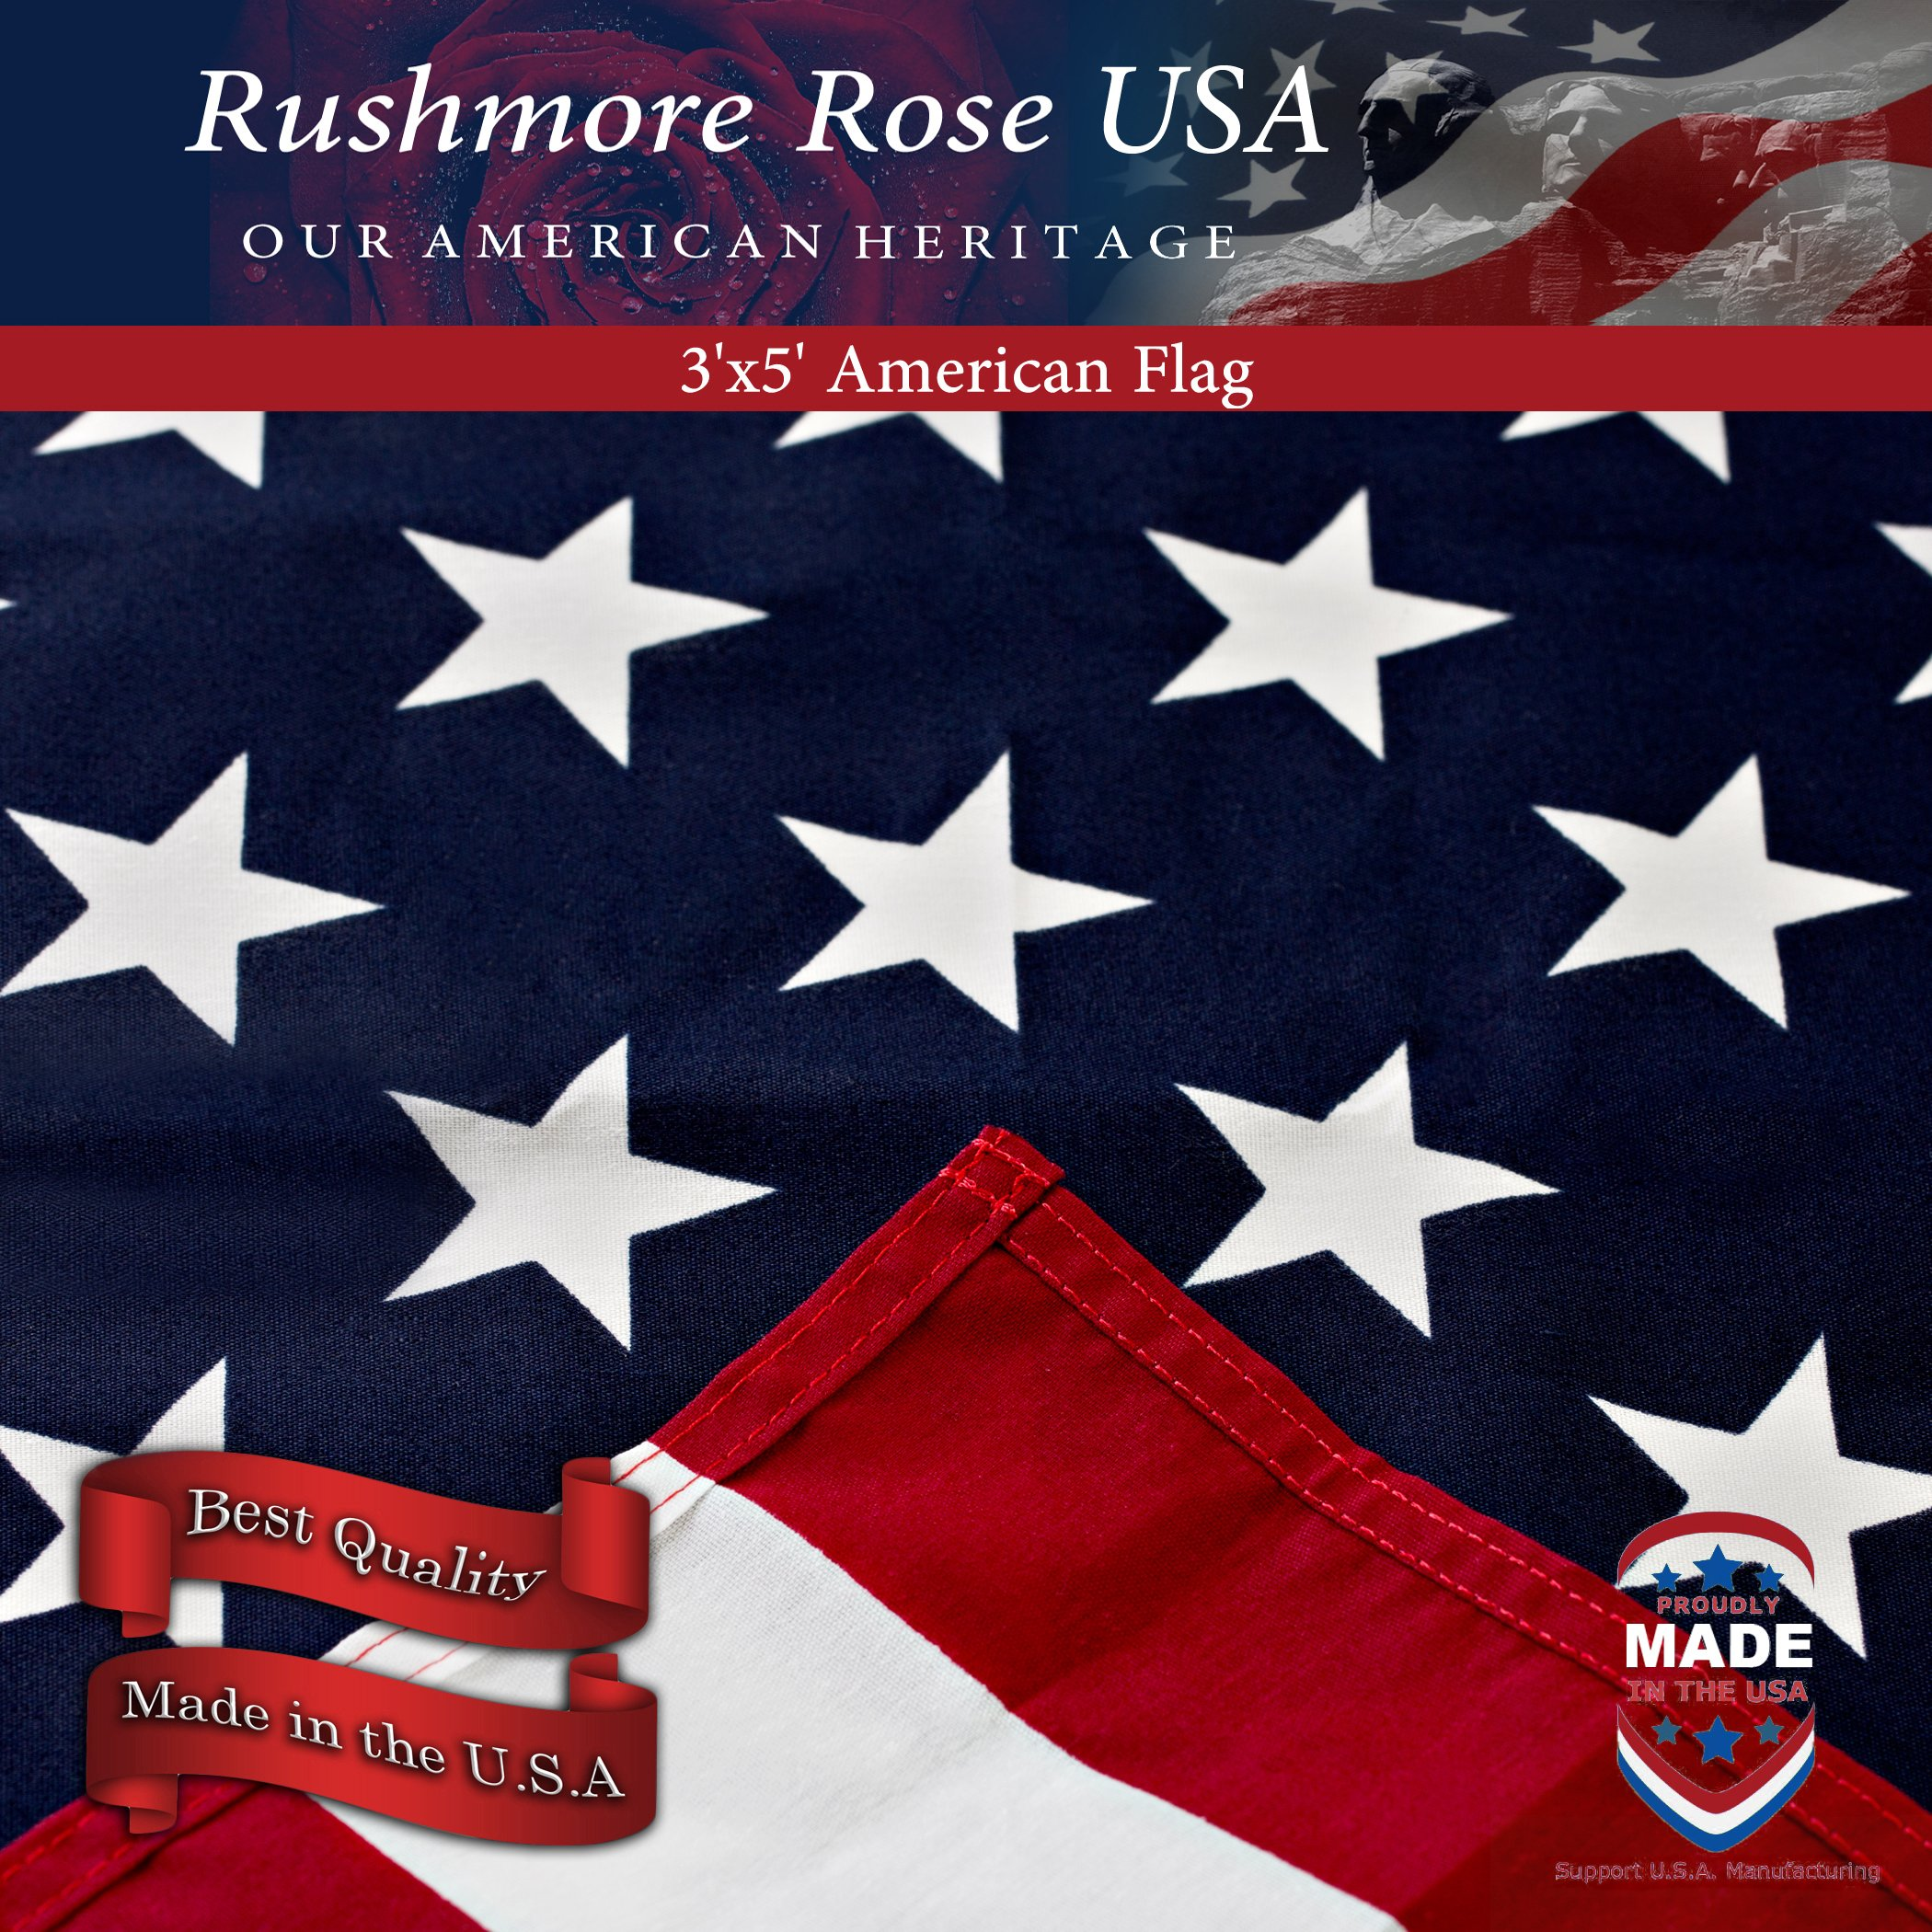 Rushmore Rose USA American Flag - US Flag 3x5 - Made in USA - Home/Garden, Indoor/Outdoor - American Made Printed Flag for True Patriots